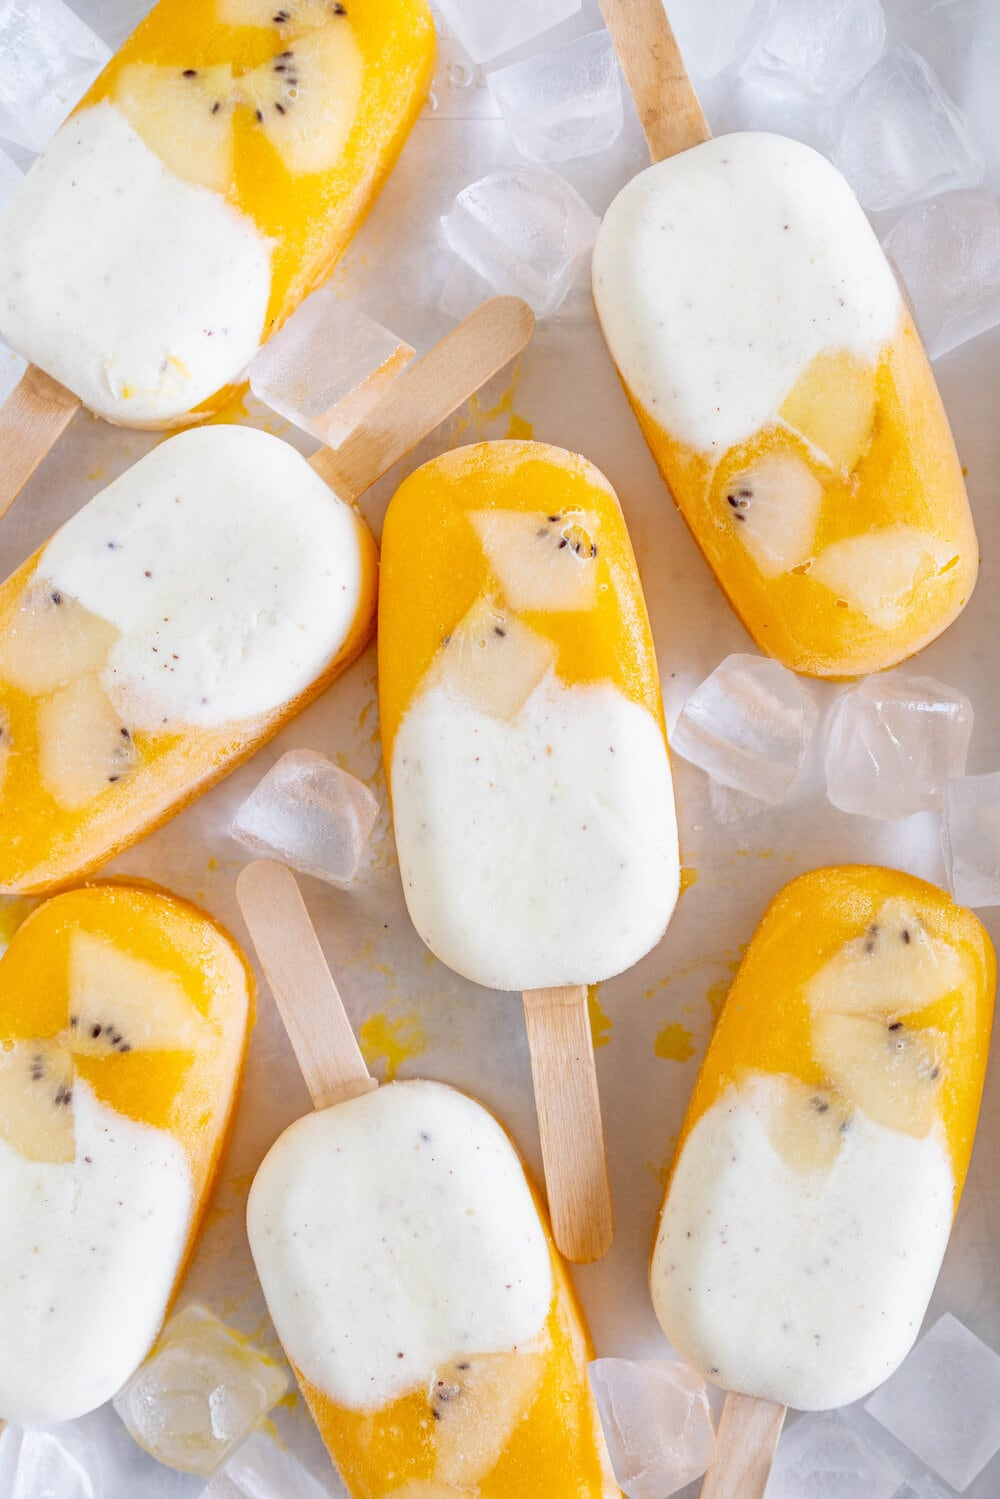 Kiwifruit and Mango Popsicles. Creamy Kiwifruit whipped cream and smooth mango puree are combined into this perfect popsicle. These pops are gluten free and super refreshing, and are great for using up summer fruit. There is no cooking required - simply blend up your fruit and you are ready to go!